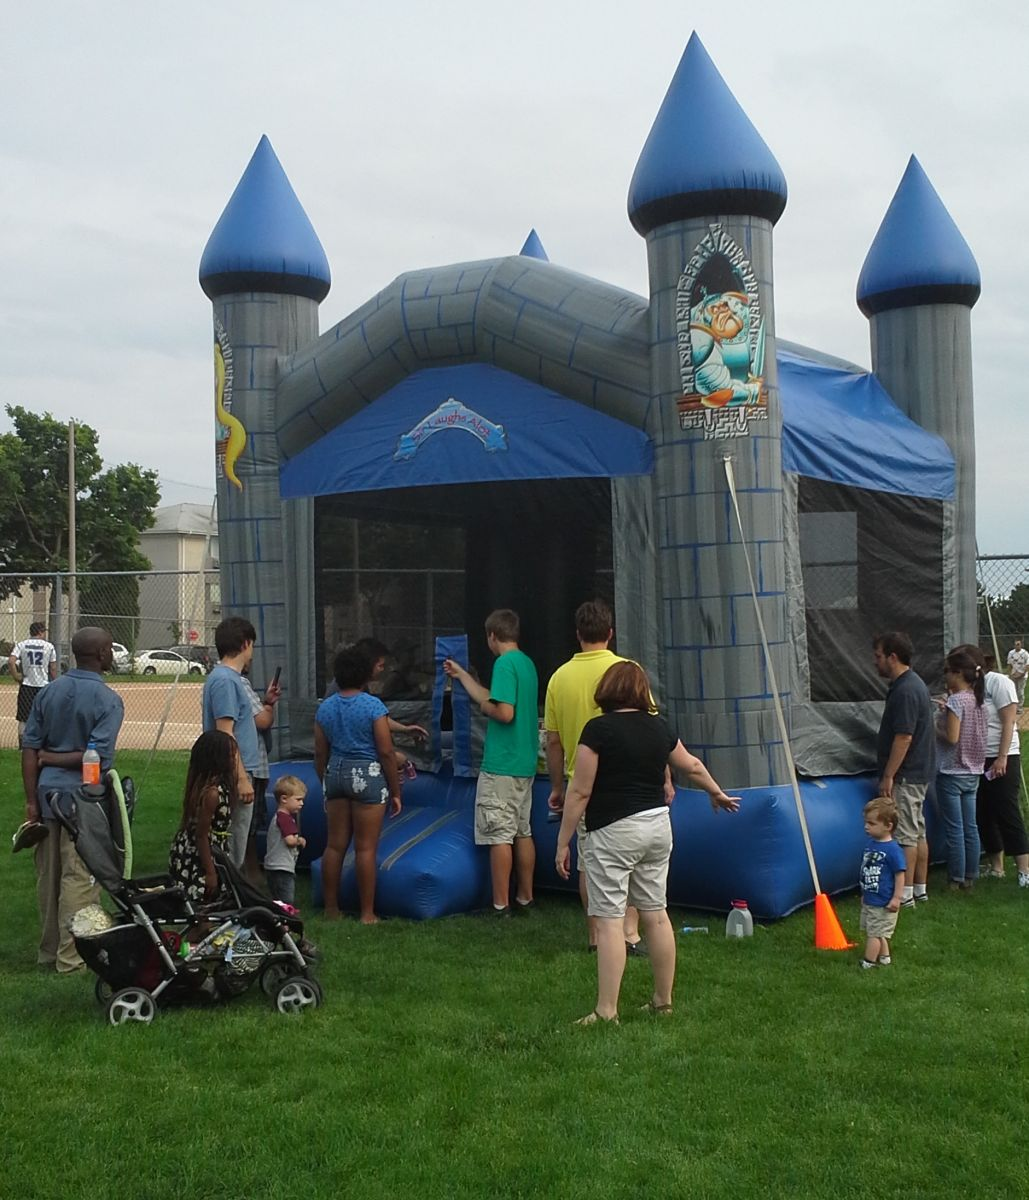 Froggy Hops attendant helps organize kids in bounce house line